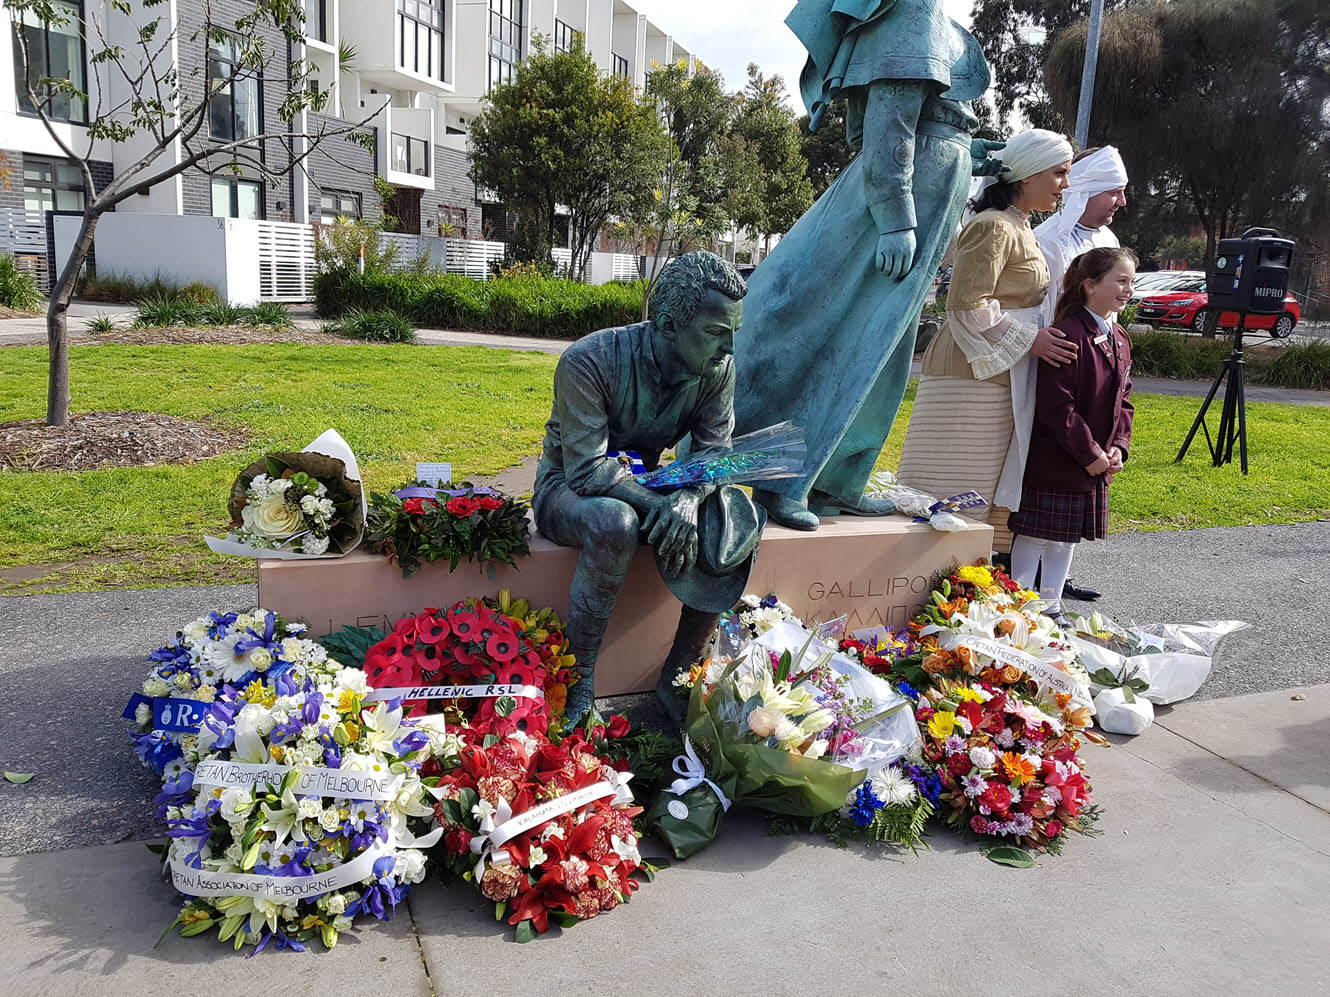 Wreaths laid at the foot of the memorial